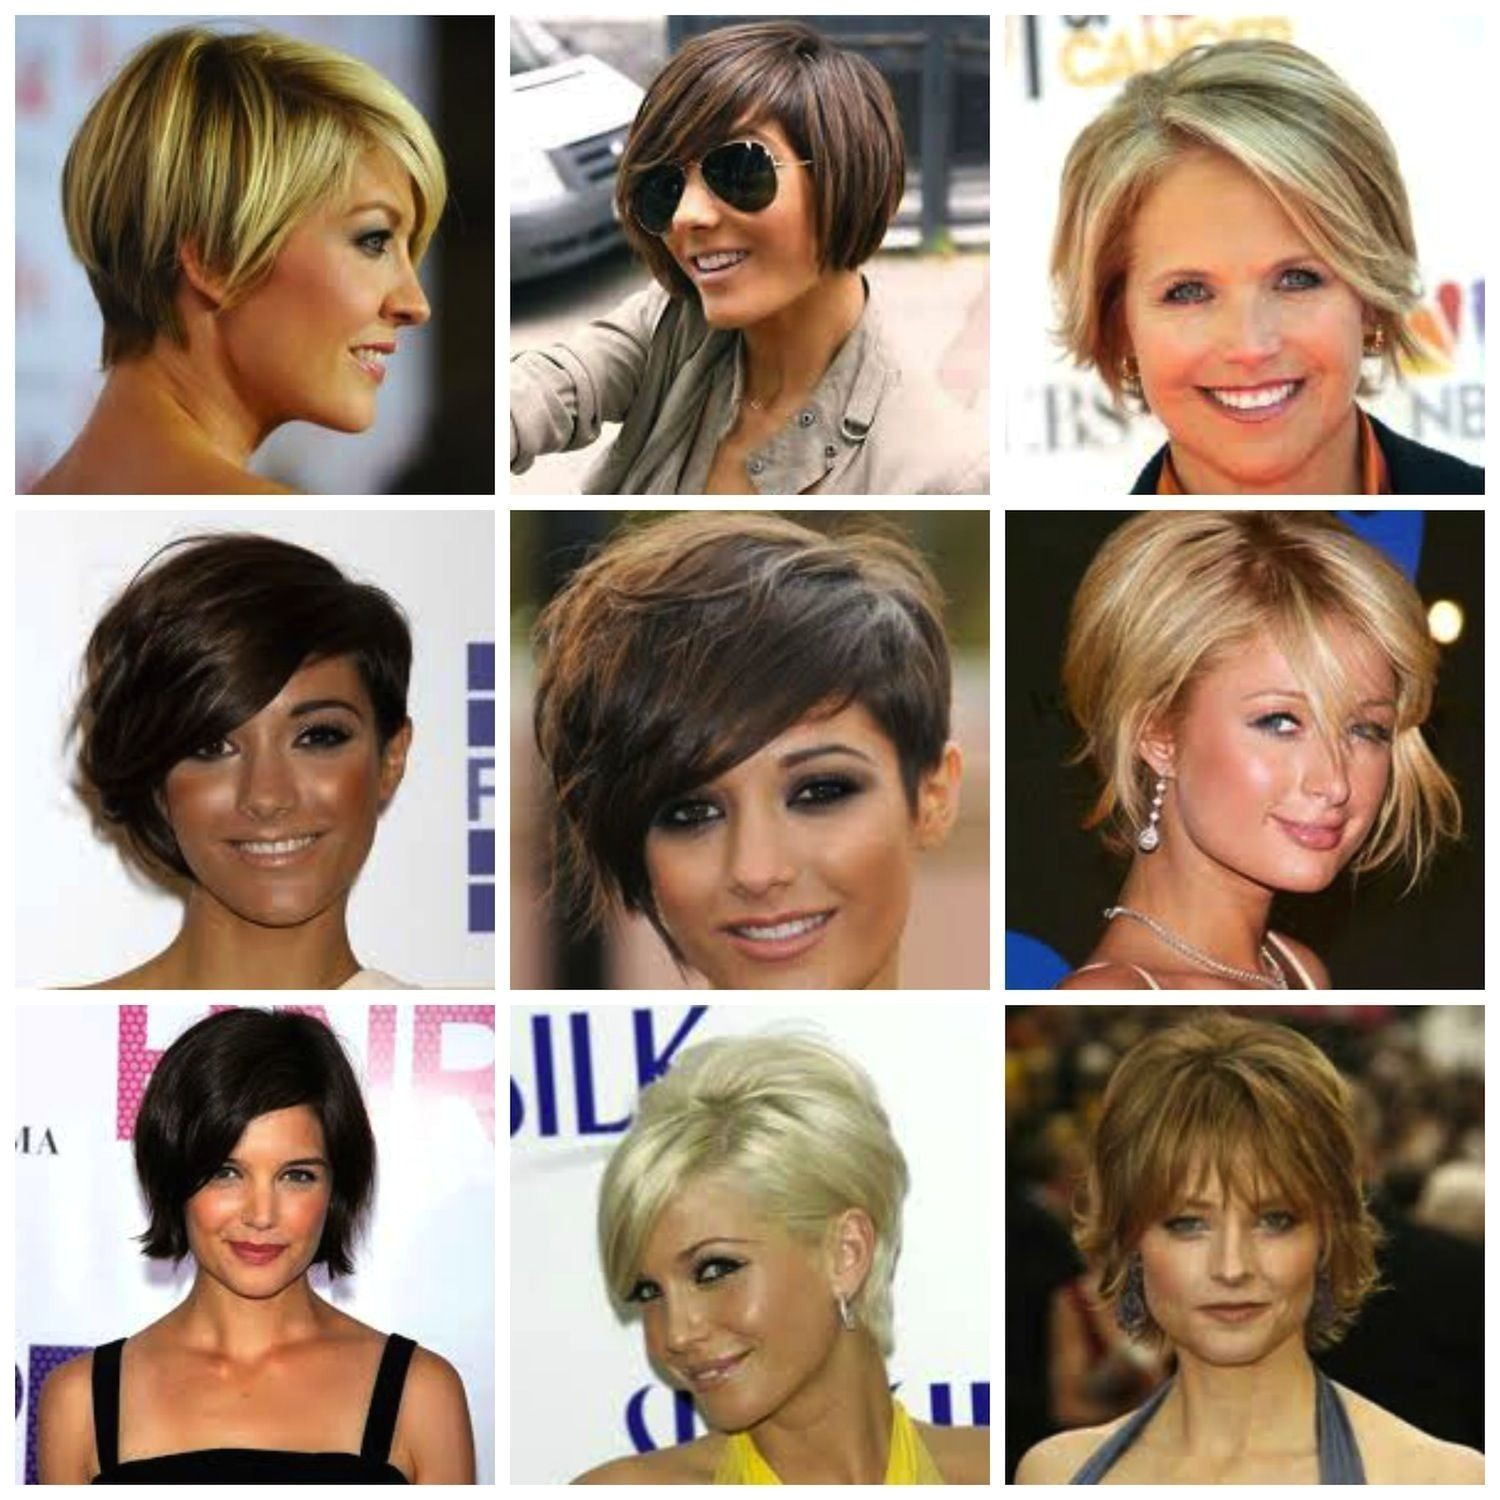 Big Hairstyles 2016 Inspirational Unique Short Hair Cut Big Hairstyles 2016 Luxury Hairstyles for Big